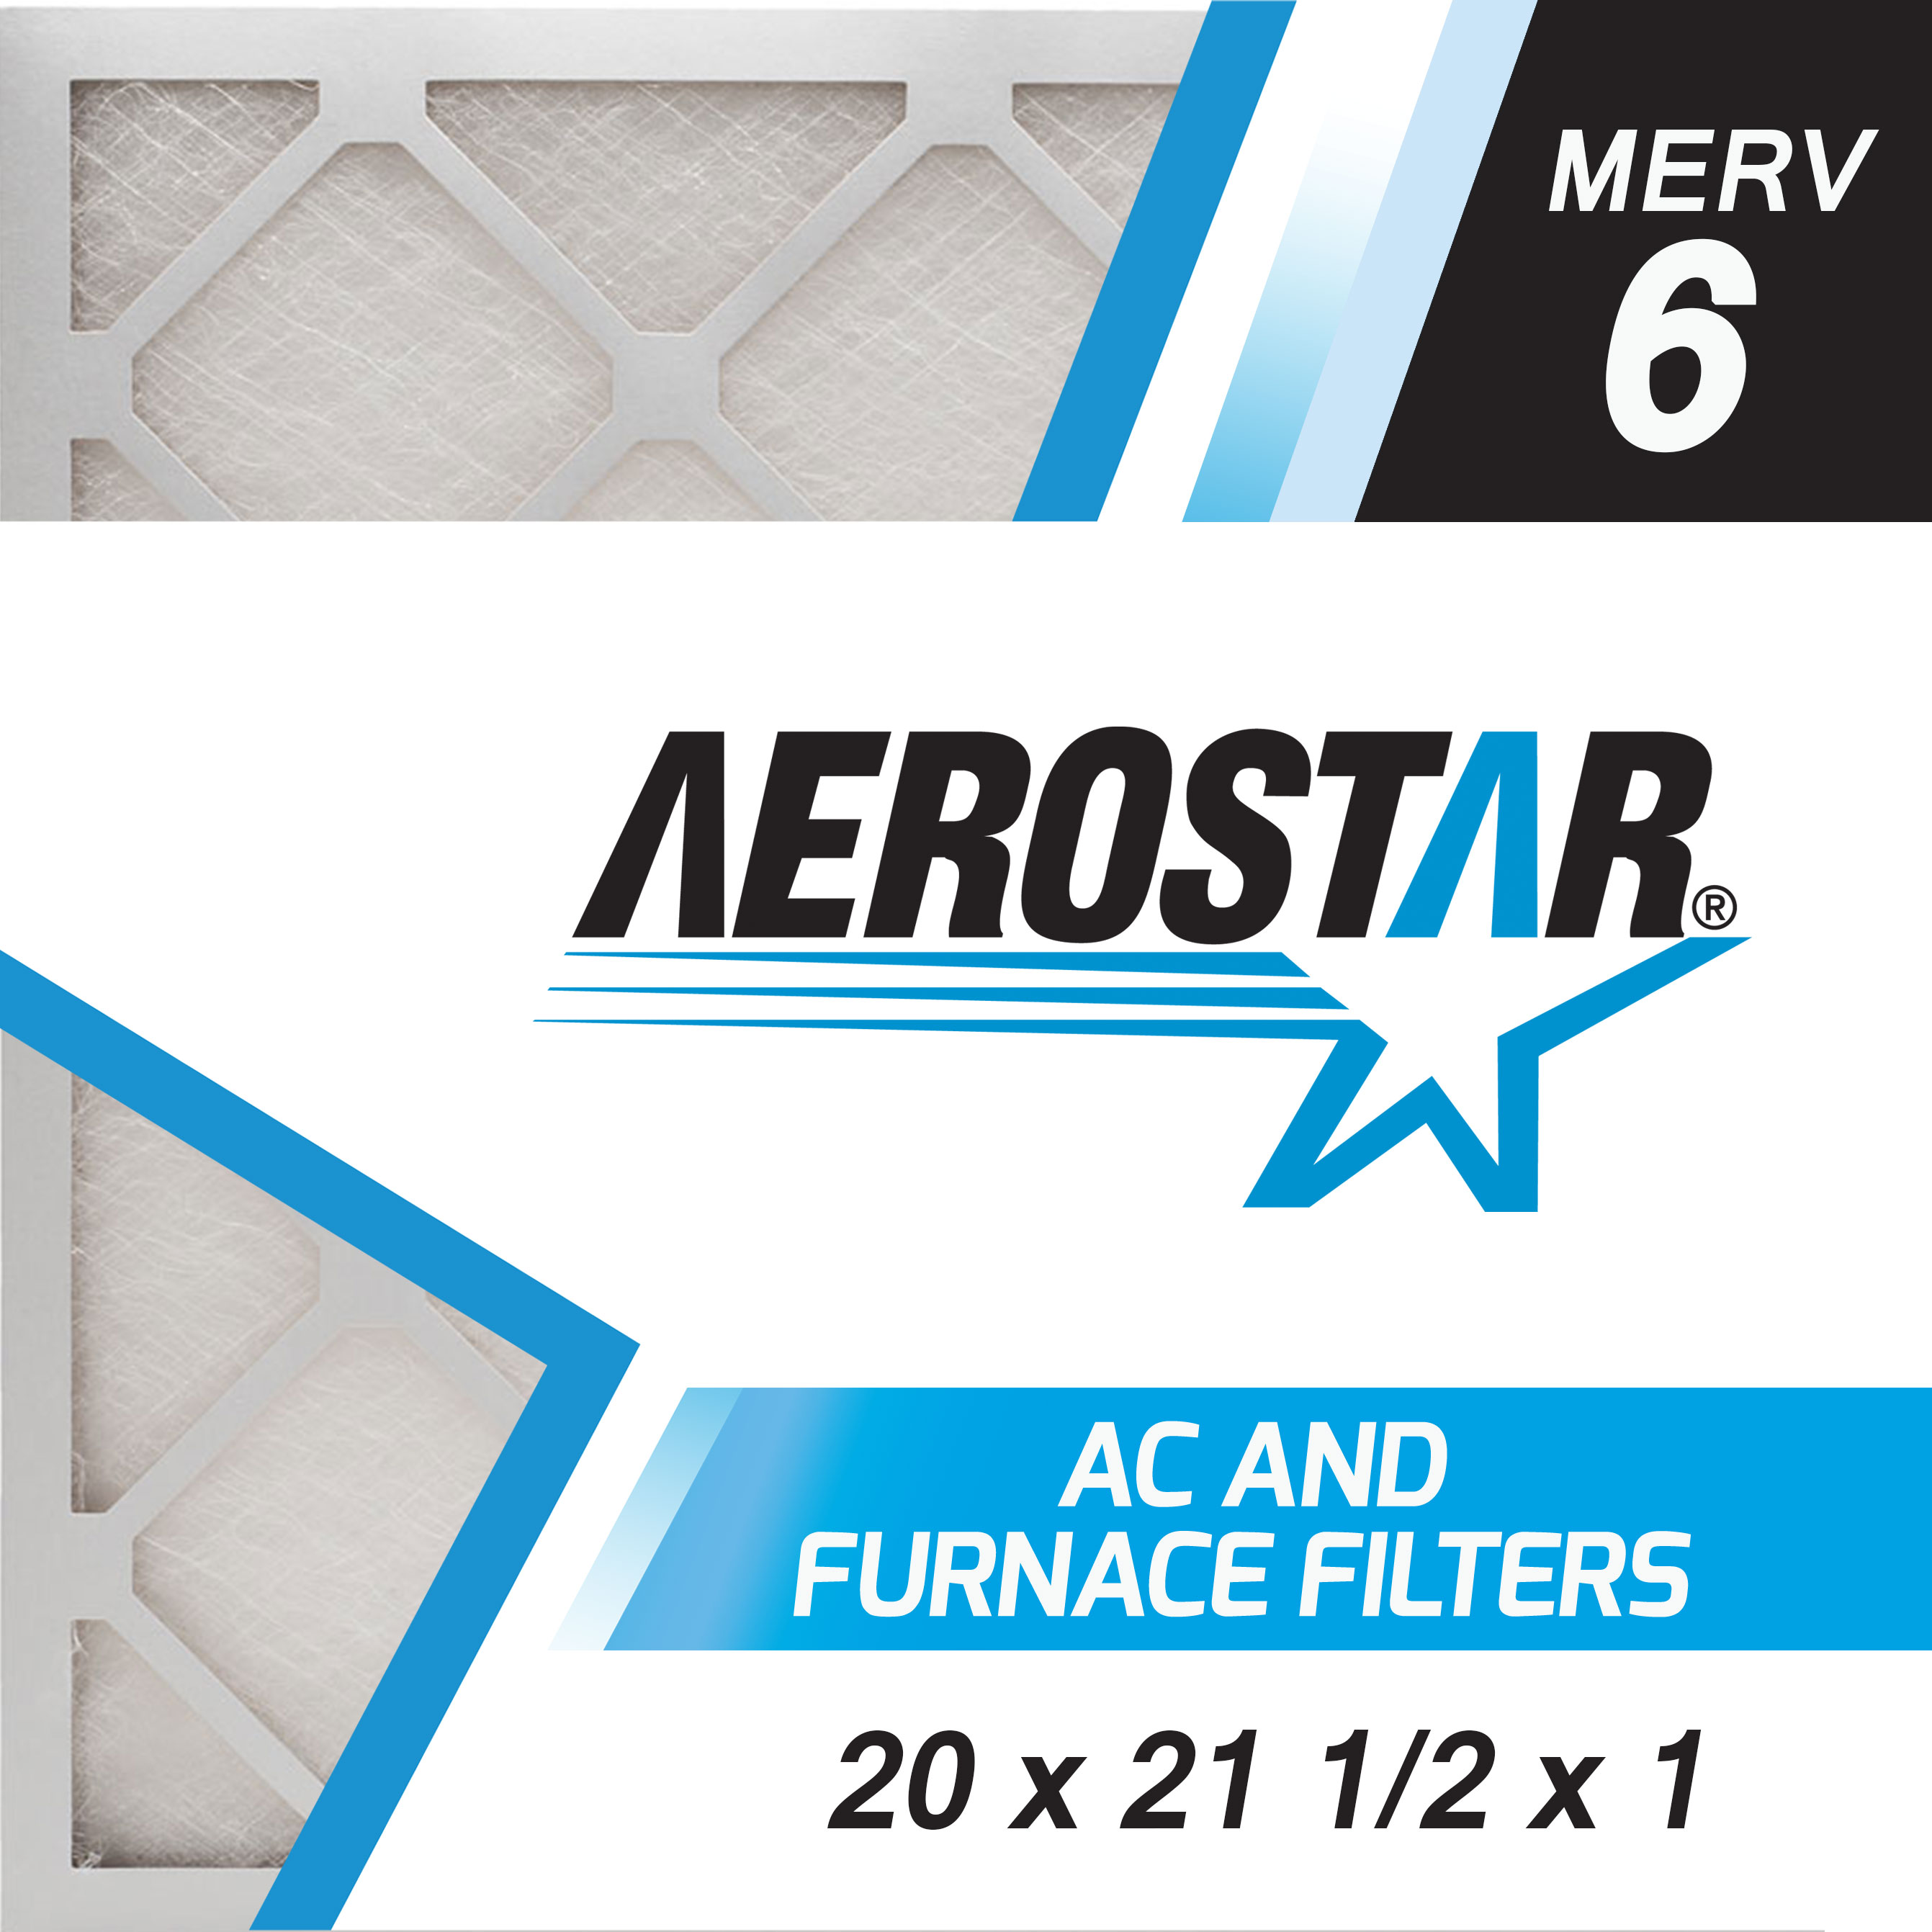 20 x 21 1/2 x 1 AC and Furnace Air Filter by Aerostar - MERV 6, Box of 6